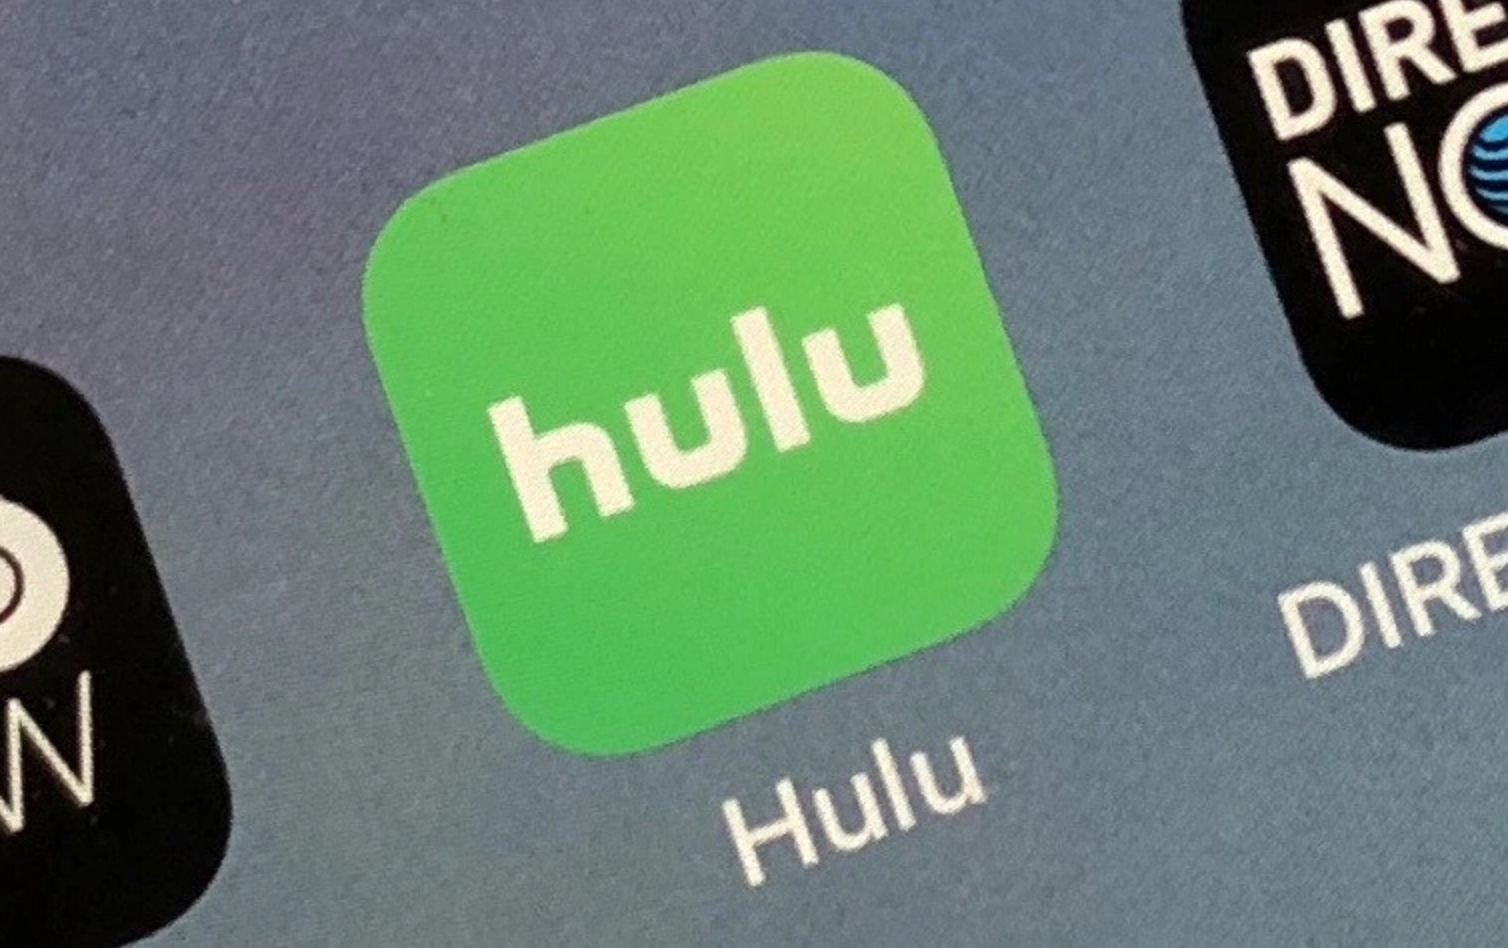 Hulu ramps up its personalization efforts, starting with launch of Like / Dislike buttons - Techcrunch